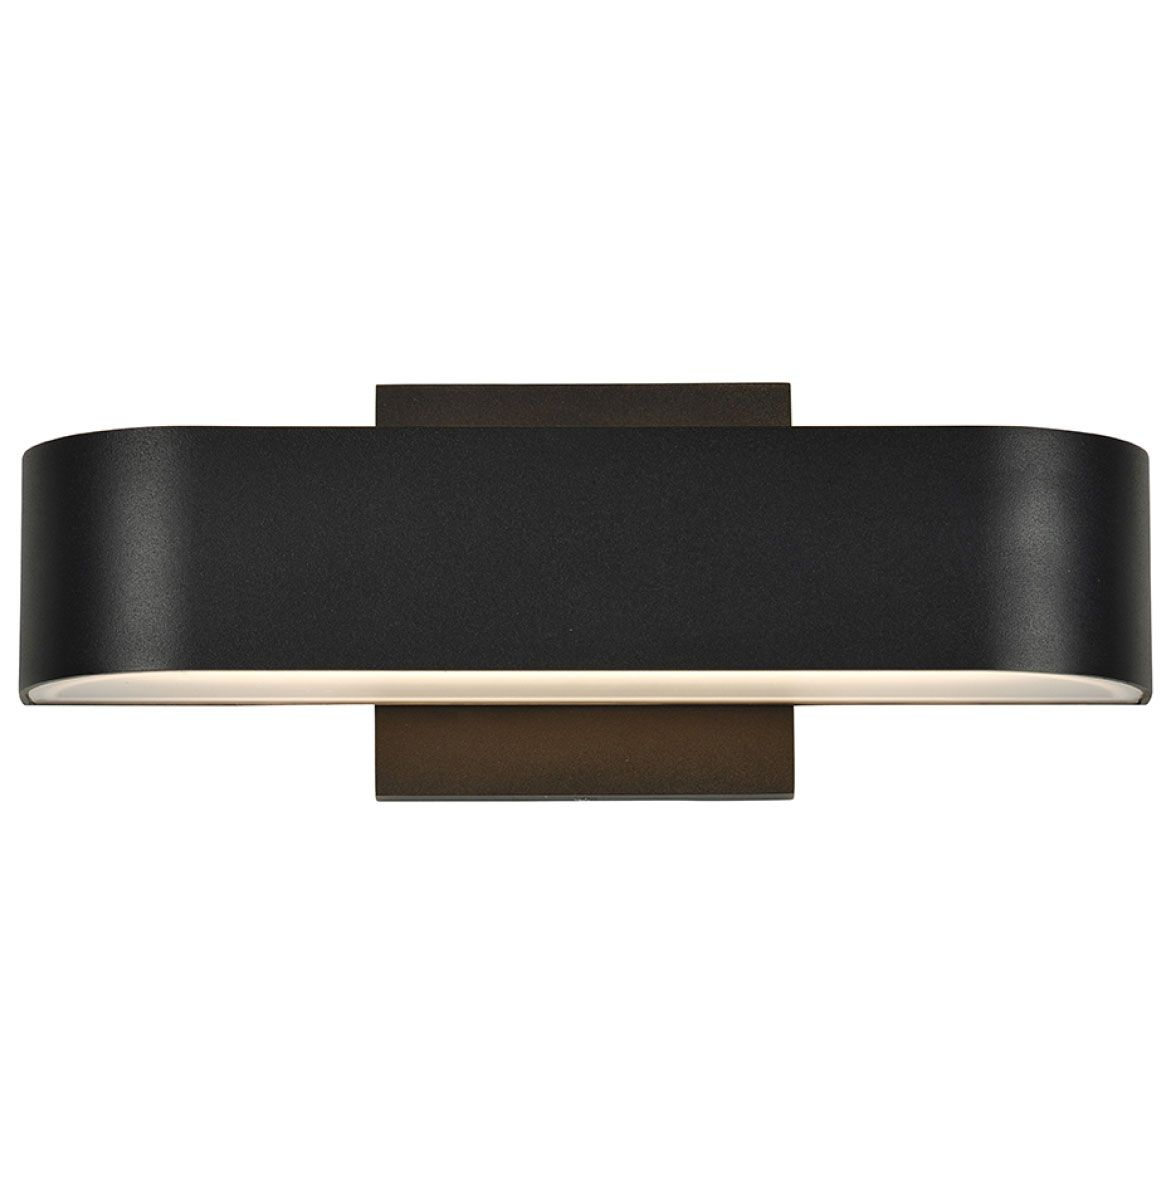 Montreal Outdoor Wall Light Led Fixture Features In Frost Glass With Black Bronze Or Satin Nickel In 2020 Outdoor Wall Lighting Led Outdoor Wall Lights Outdoor Walls